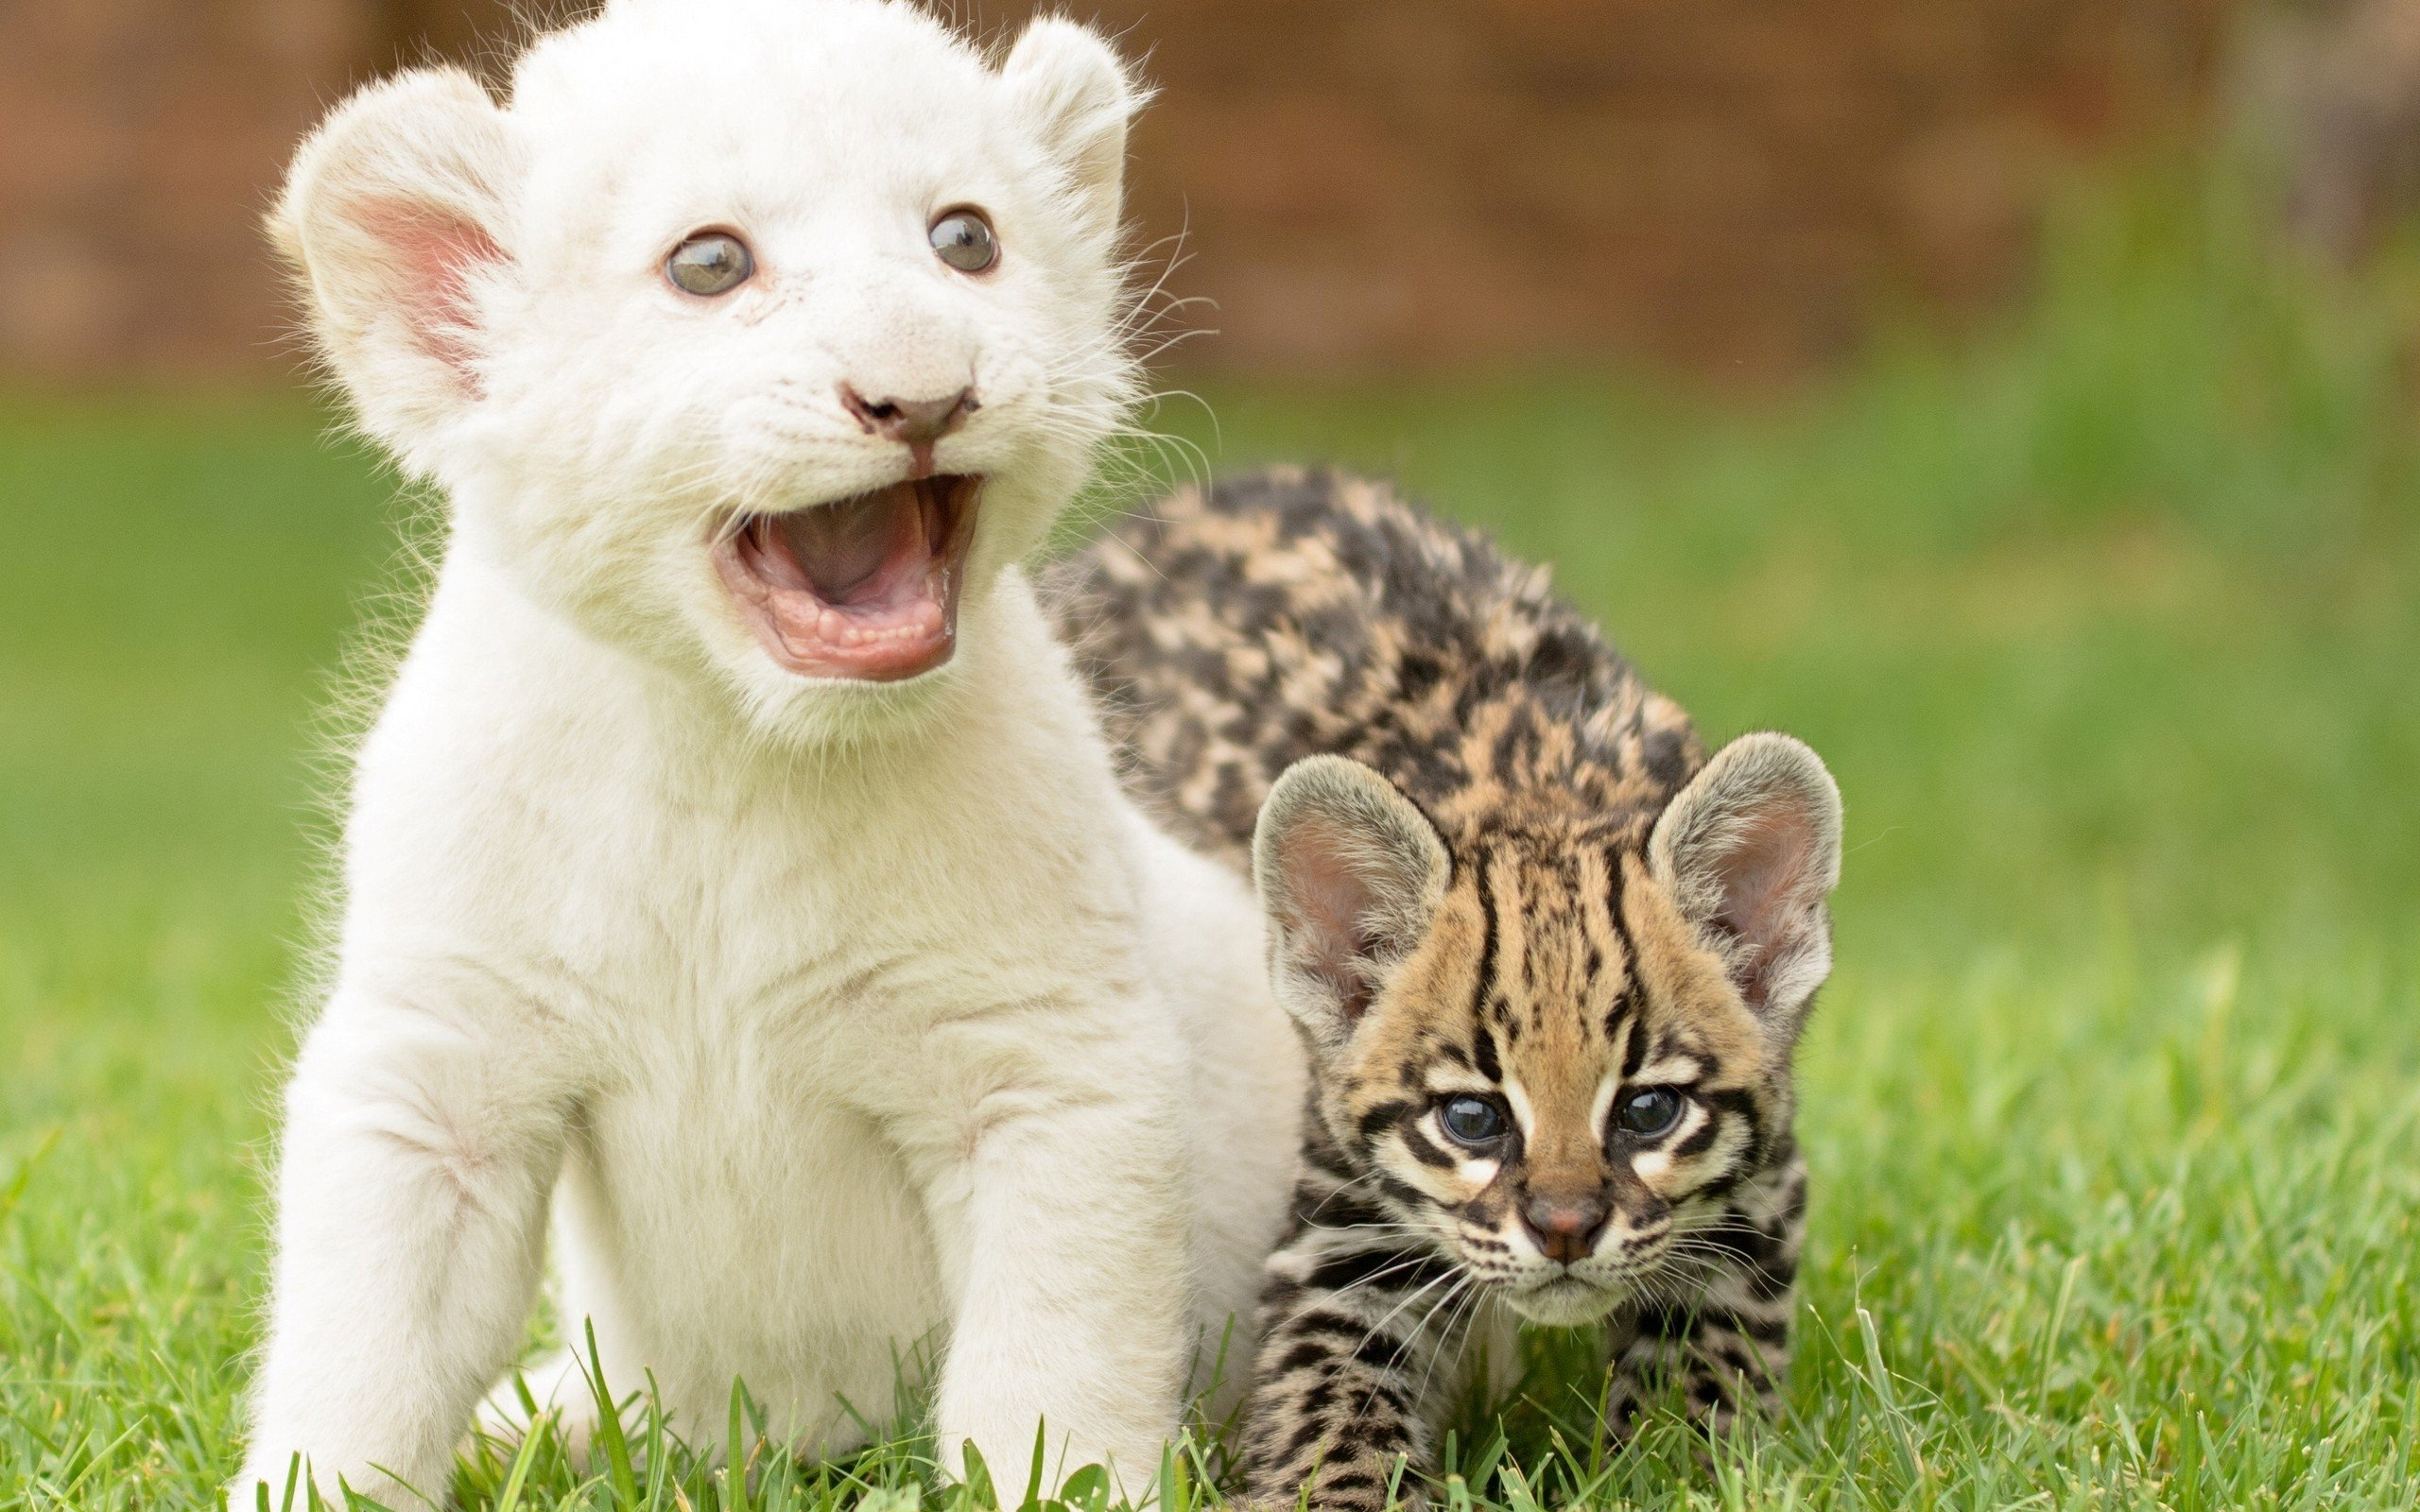 Beauty cute amazing animal white lion cub with cat - Cute baby animal desktop backgrounds ...